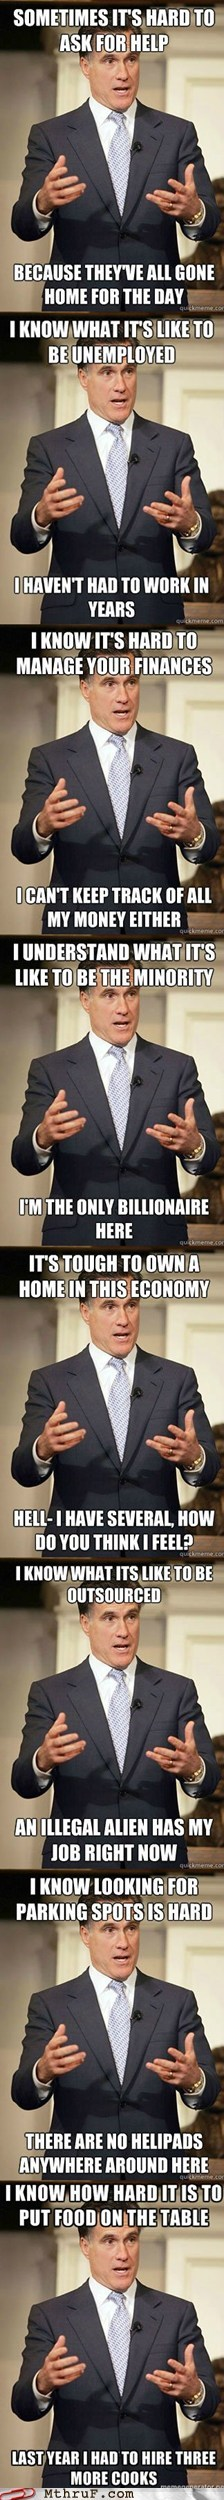 Oh Mitt, You Know Us All Too Well